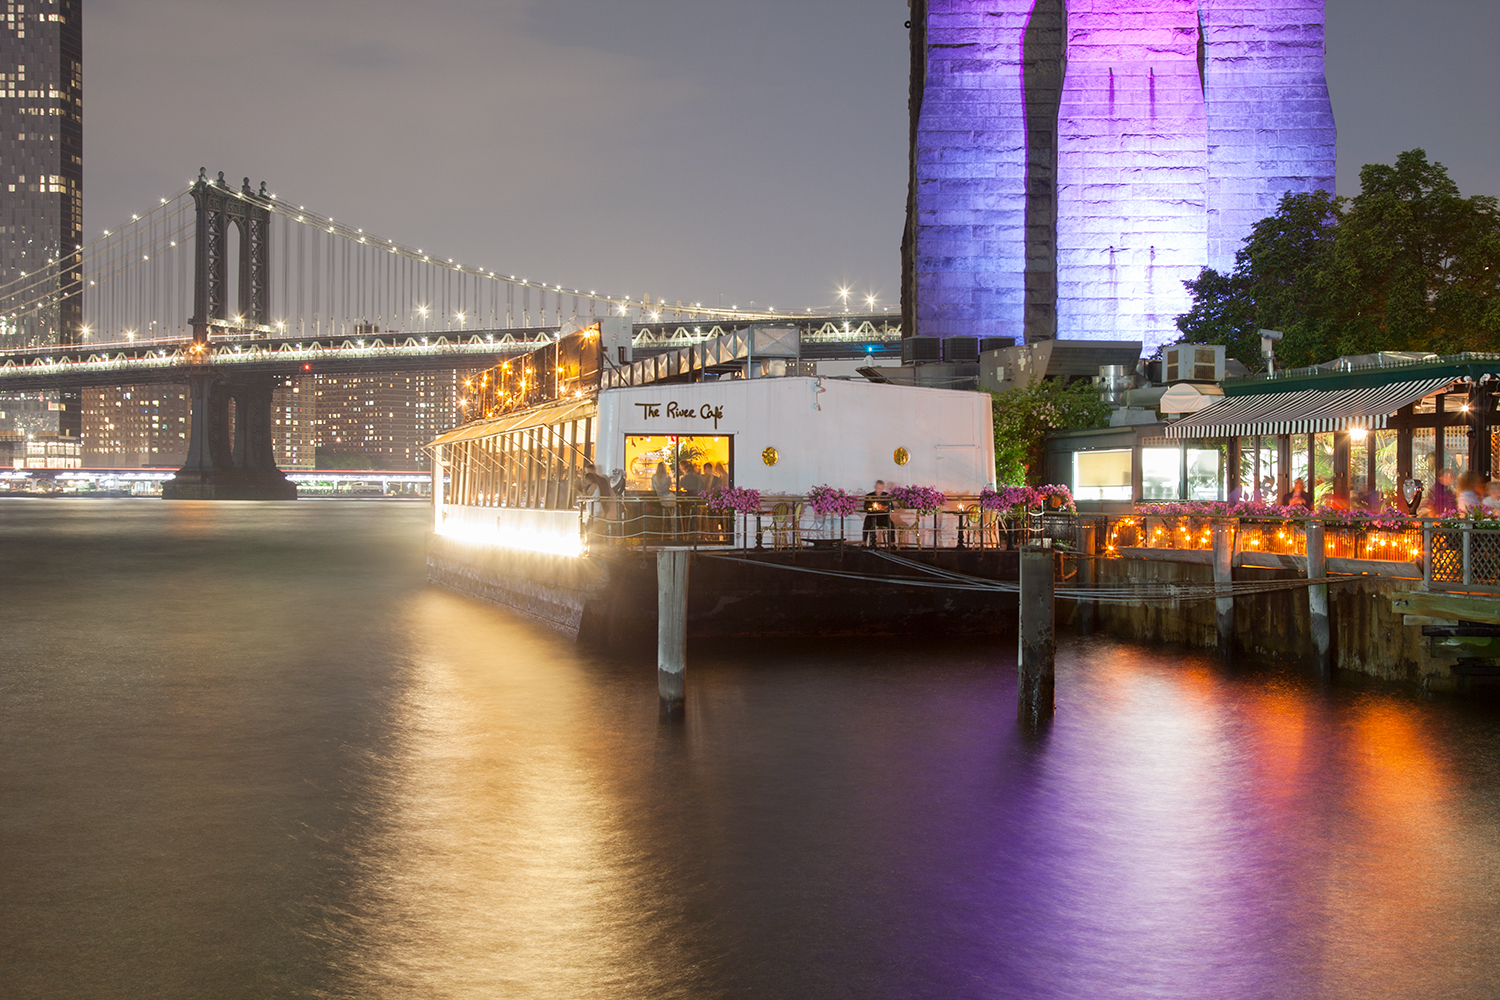 The_River_Cafe_at_night, Brooklyn, NYC